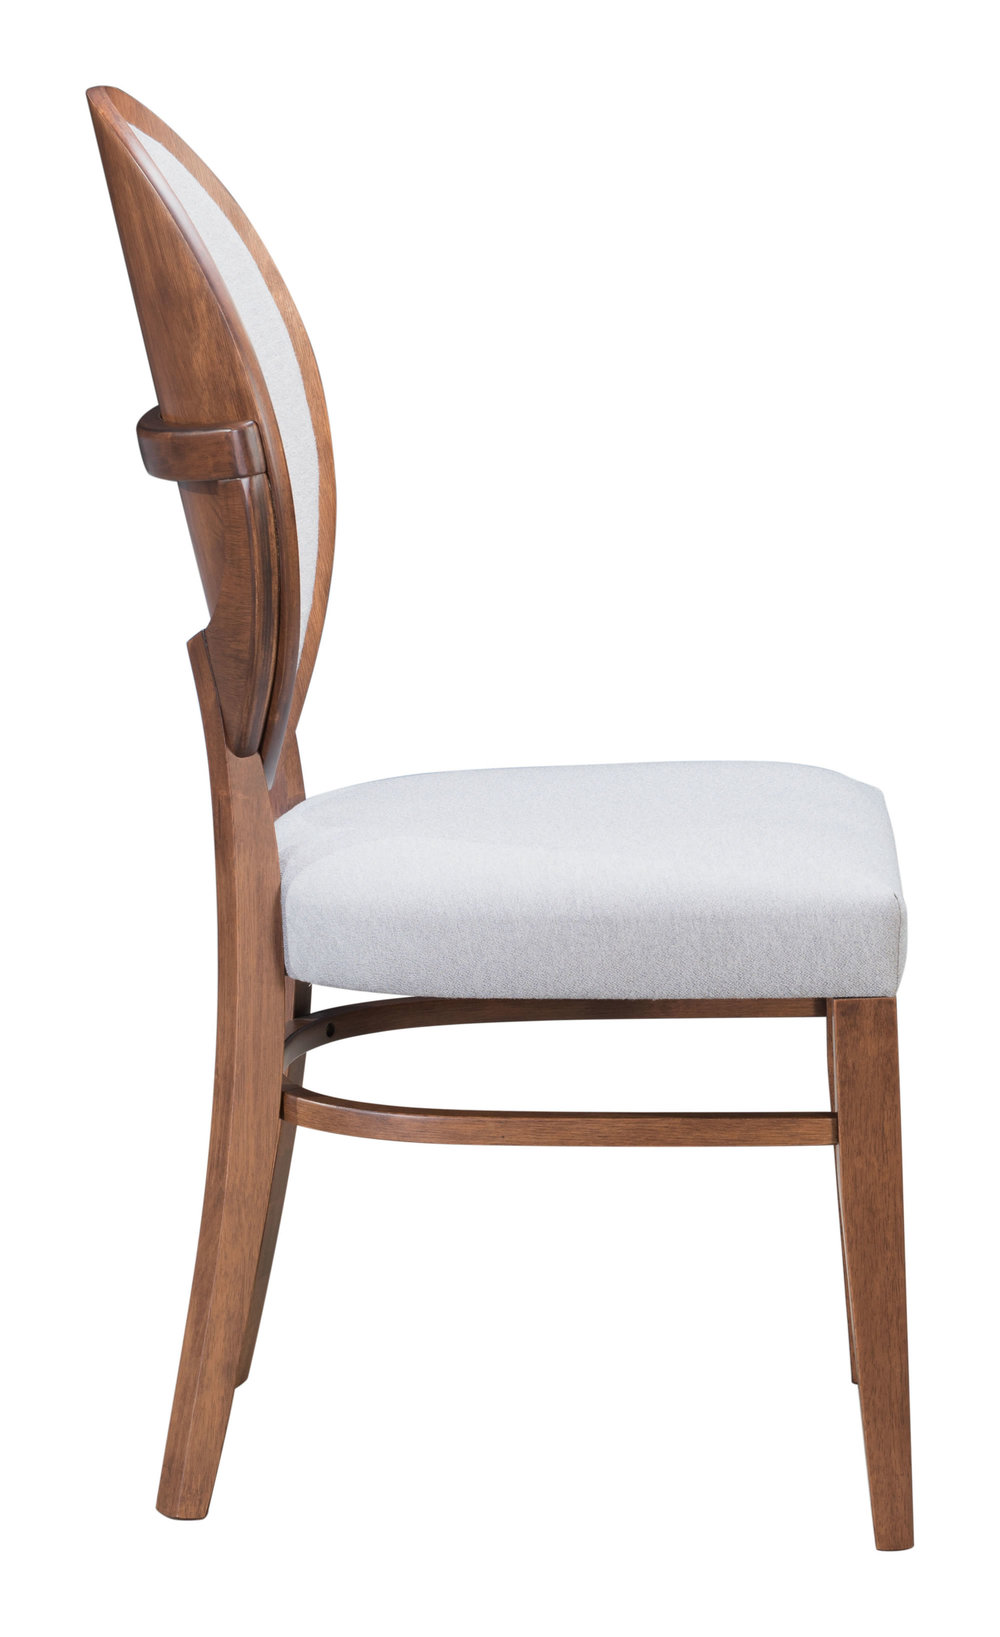 ZUO MODERN CONTEMPORARY, INC - Regents Dining Chair - Set of 2 - Walnut & Gray